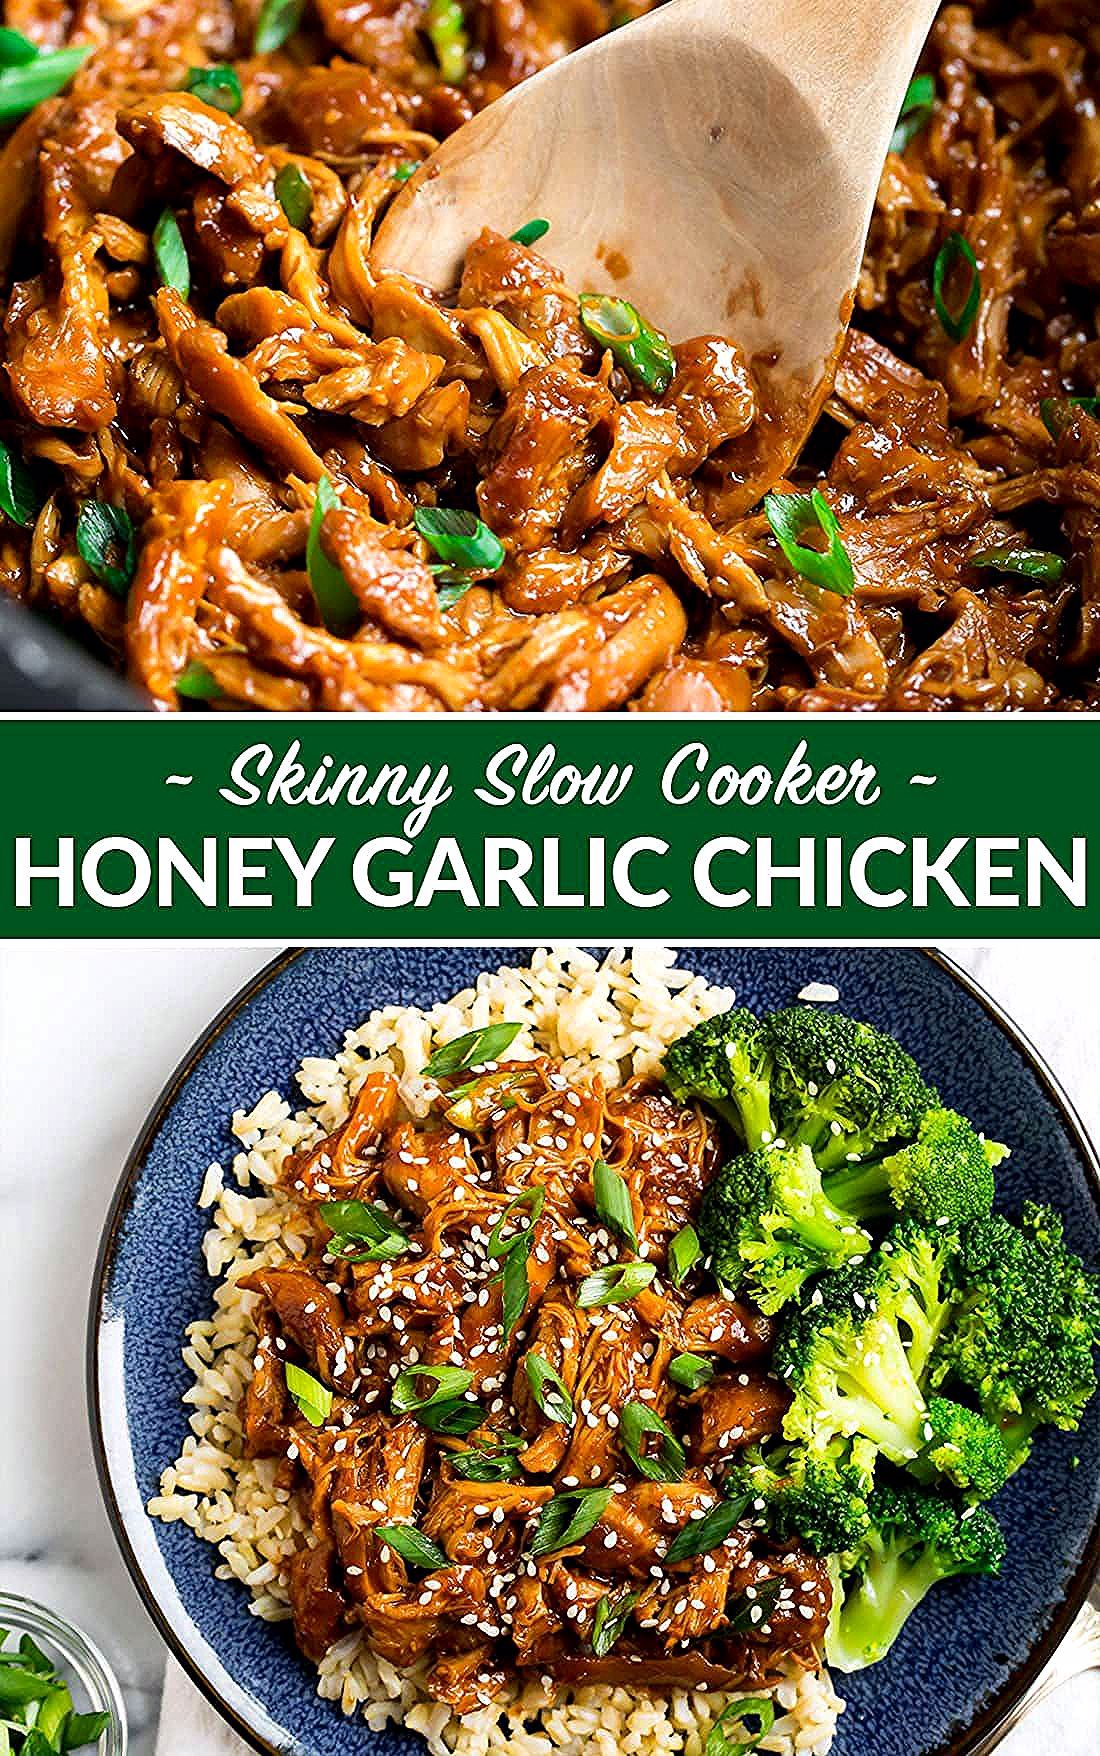 Healthy Slow Cooker Honey Garlic Chicken Thighs Just 8 ingredients Juicy chicken in a sweet sticky honey garlic sauce Our entire family loves this easy healthy crockpot r...